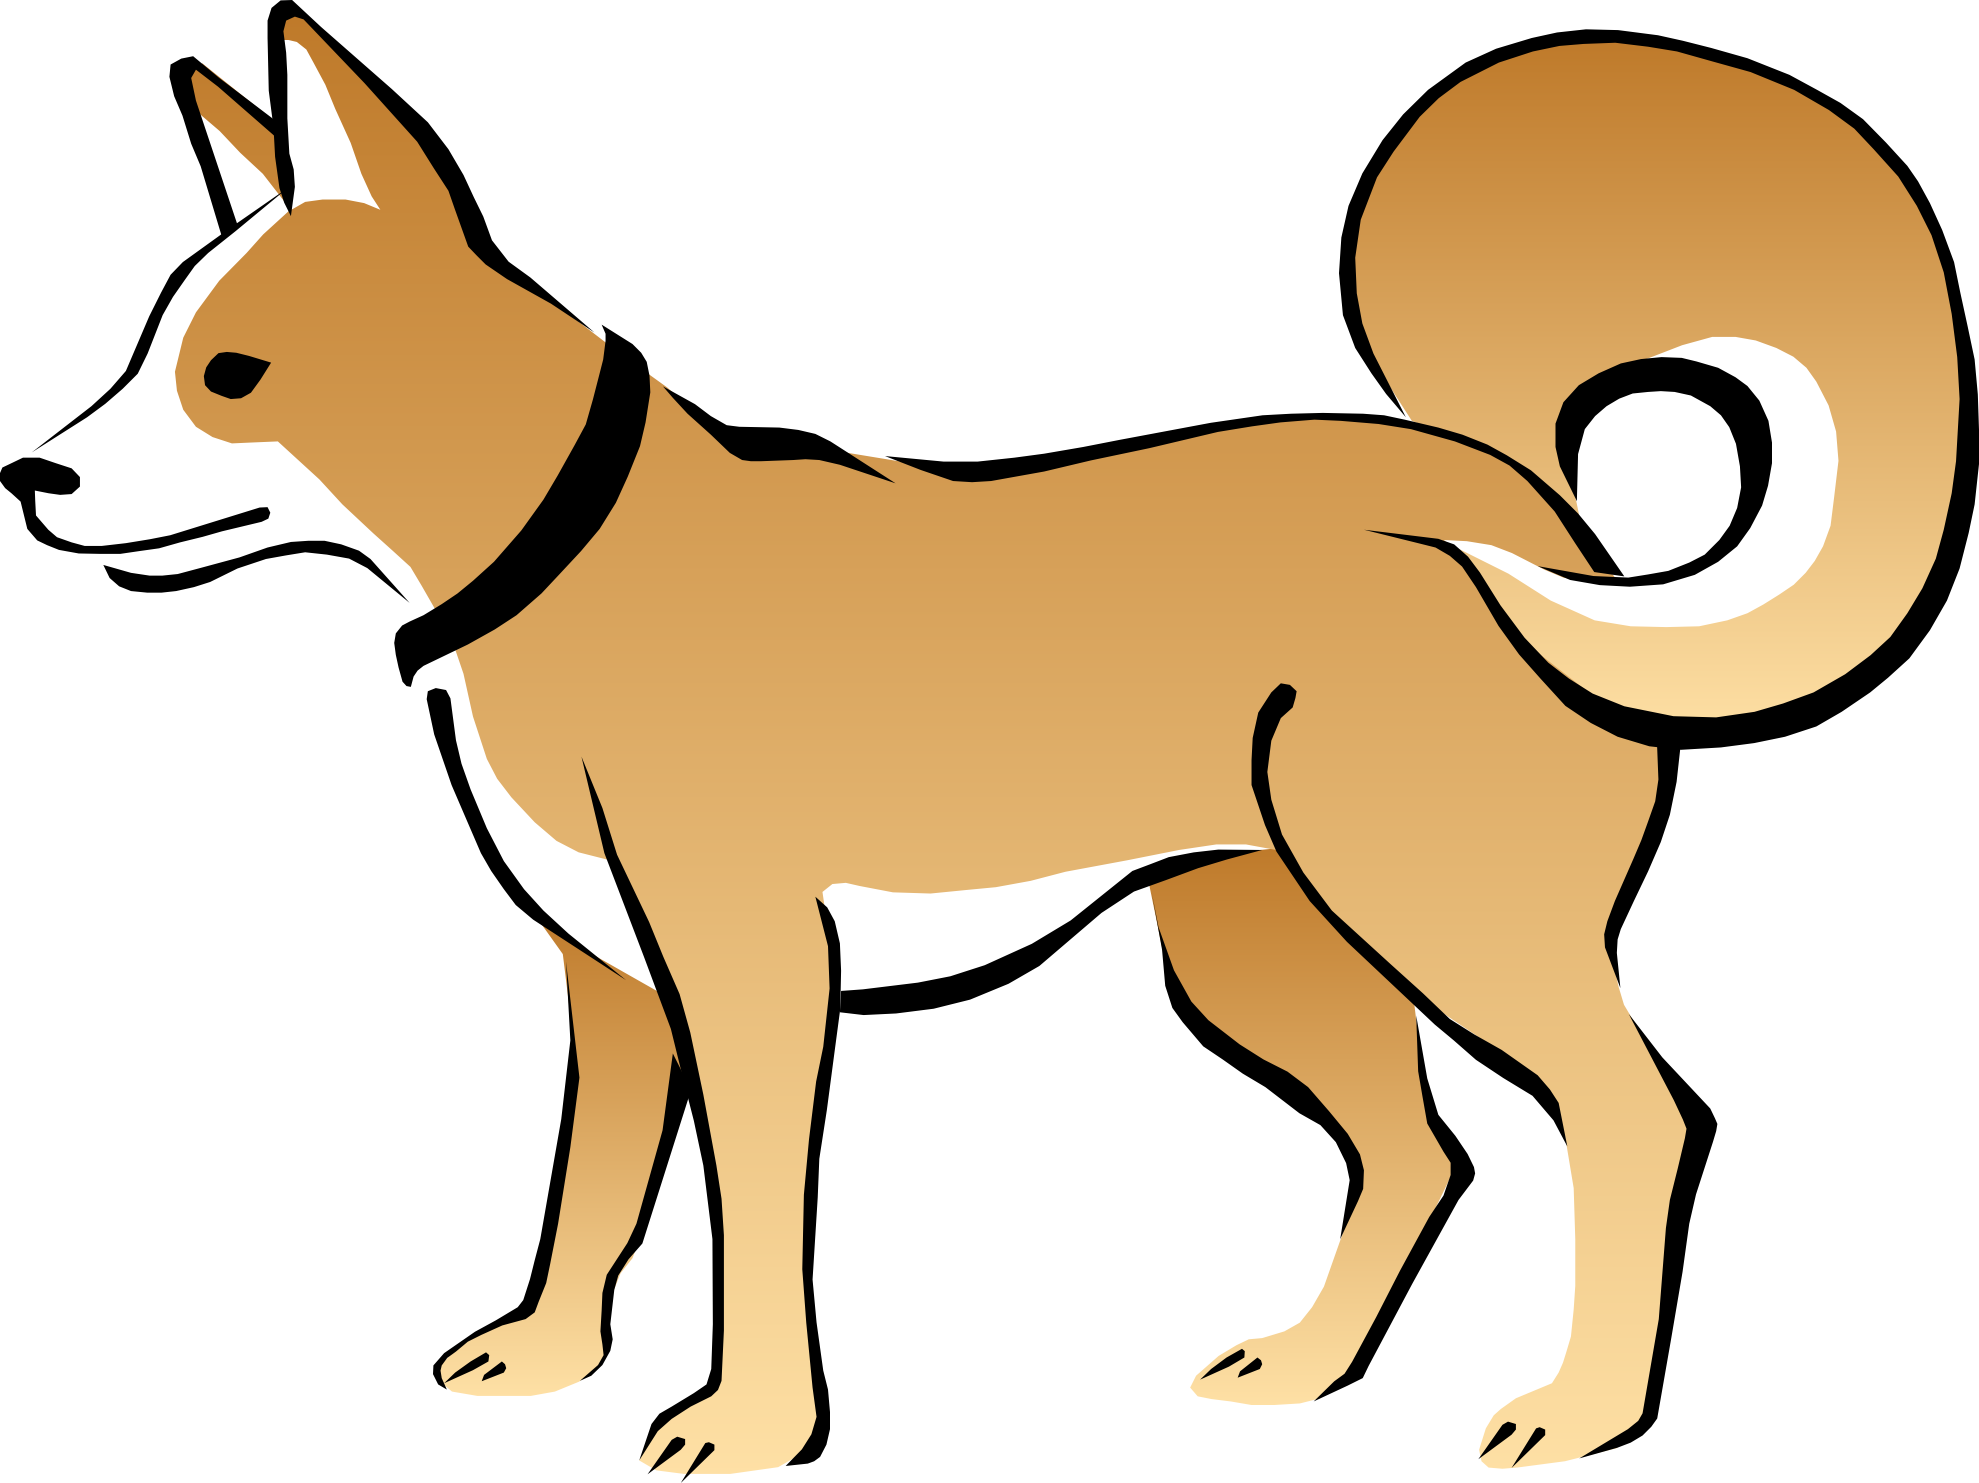 Cute Puppy Clipart At Getdrawings Com Free For Personal Use Cute